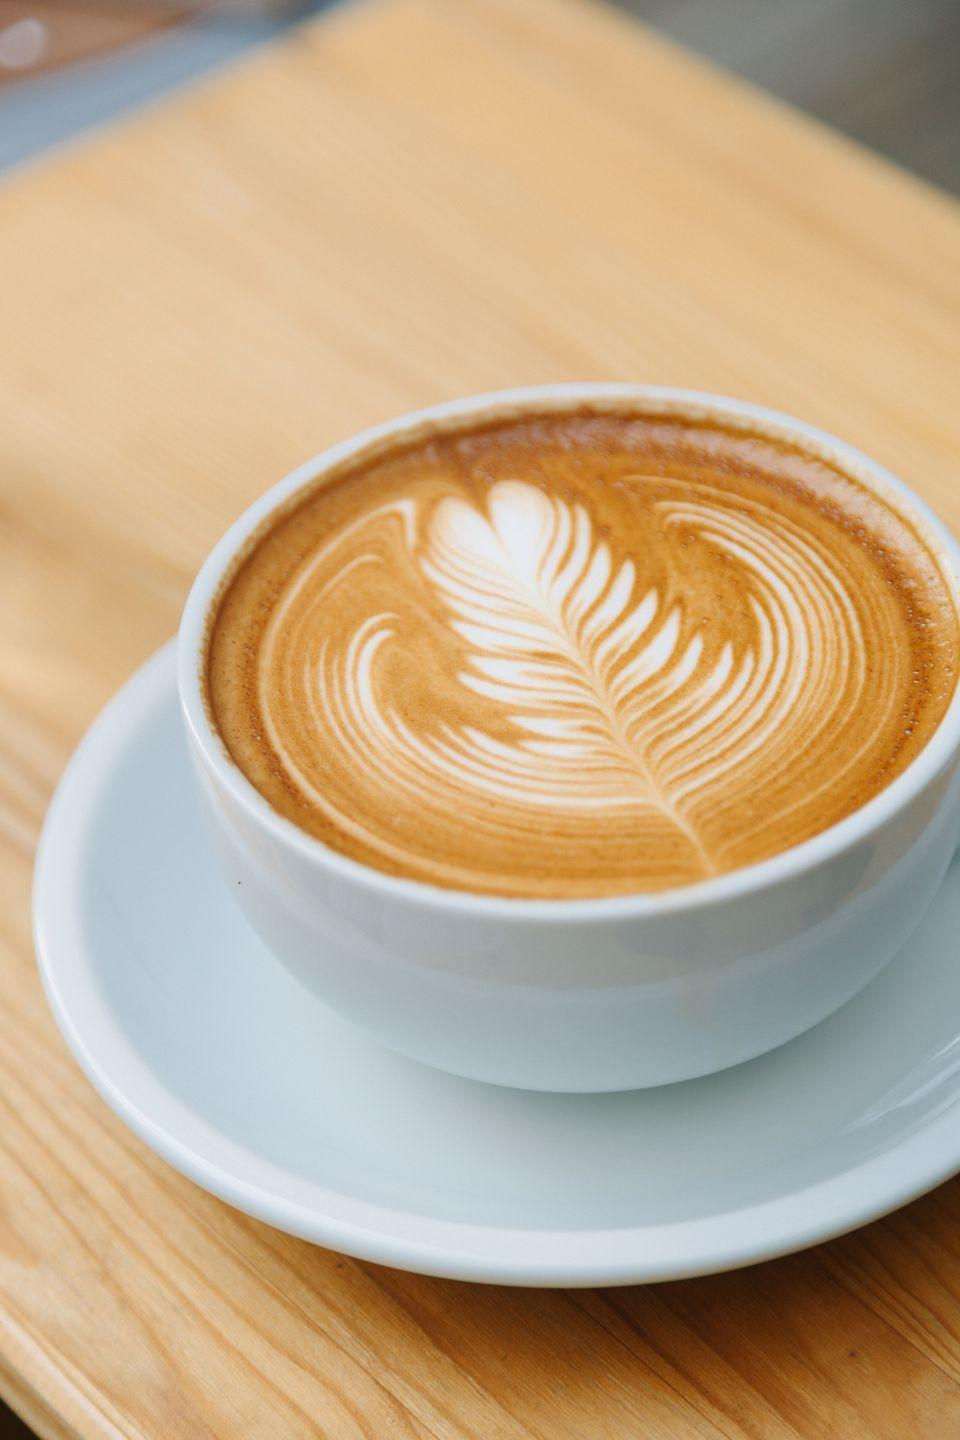 """<p>This is the one exception to the whole """"don't drink your calories at breakfast"""" rule. By making a large (16 ounces and up) latte a part of your breakfast, you're getting around 13 grams of protein! It's a great solution when you're pinched for time. Since milk is 80% water but also contains minerals such as calcium and <a href=""""https://www.goodhousekeeping.com/health/diet-nutrition/g2065/potassium-superfoods/"""" rel=""""nofollow noopener"""" target=""""_blank"""" data-ylk=""""slk:potassium"""" class=""""link rapid-noclick-resp"""">potassium</a>, it can help you hydrate with both fluid <em>and </em>electrolytes. Skip flavored syrups, sugar, caramel, or deceptive calorie bombs in pre-sweetened drinks. Choose <a href=""""https://www.goodhousekeeping.com/health/diet-nutrition/g20975587/healthy-starbucks-drinks/"""" rel=""""nofollow noopener"""" target=""""_blank"""" data-ylk=""""slk:coffee-based beverages"""" class=""""link rapid-noclick-resp"""">coffee<em>-</em>based beverages</a> like café au laits, lattes, or mistos with low-fat milk or unsweetened <a href=""""https://www.goodhousekeeping.com/health/diet-nutrition/g27128821/best-milk-alternative-substitutes/"""" rel=""""nofollow noopener"""" target=""""_blank"""" data-ylk=""""slk:plant-based alternatives"""" class=""""link rapid-noclick-resp"""">plant-based alternatives</a>, like soy milk. </p>"""